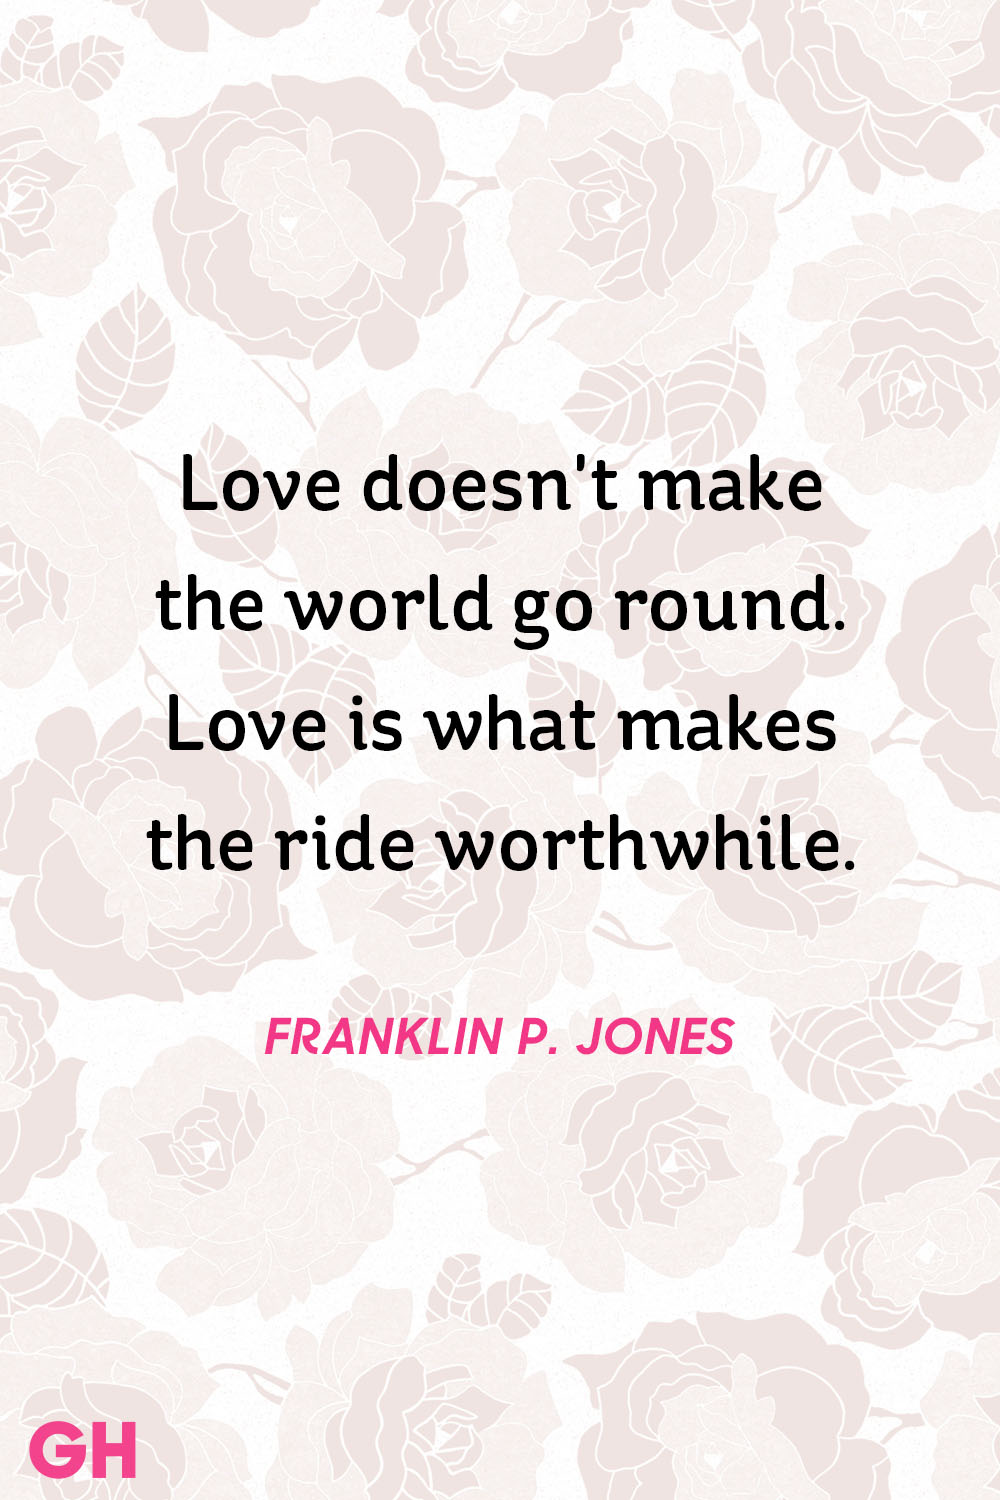 Quotes Romantic 30 Cute Valentine's Day Quotes  Best Romantic Quotes About